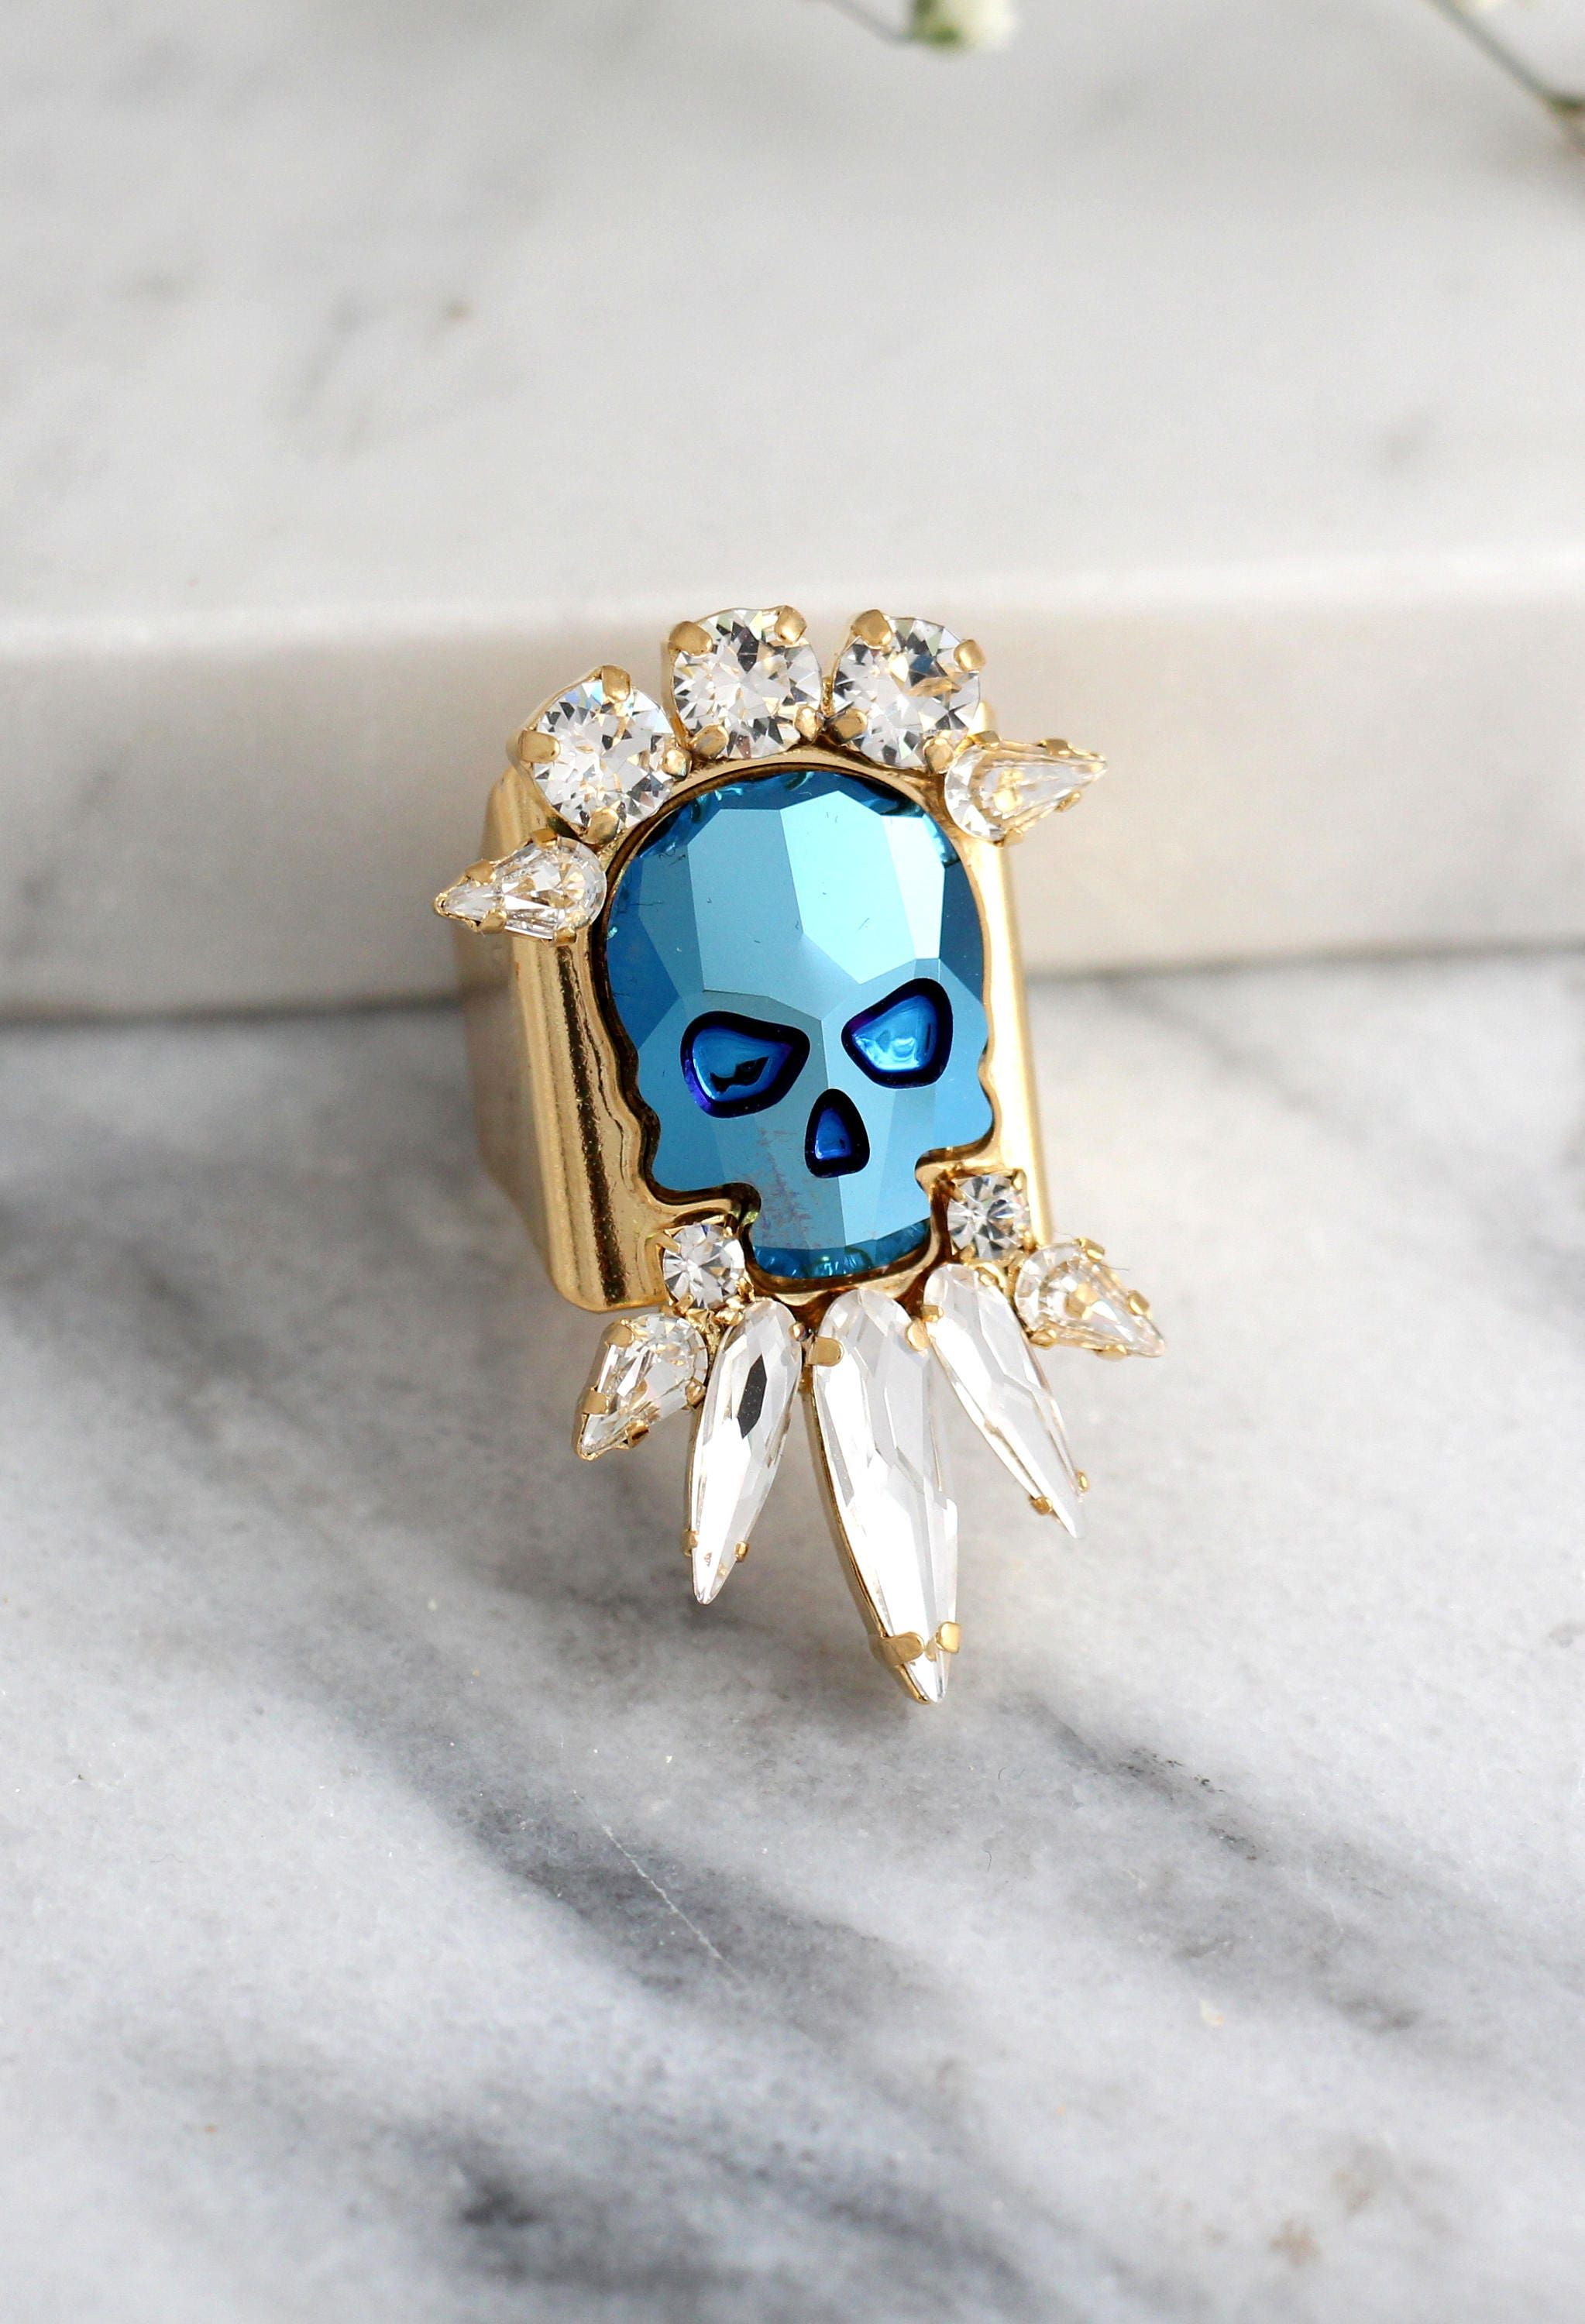 """""""Skull Ring, Silver Skull Ring, Cocktail Ring, Gothic Ring, Sugar Skull Ring, Bridal Ring, Adjustable Skull Crystal Ring, Gift For Woman. ♥IF YOU WANT THE BEST CHOSE THE ORIGINAL ♥ Top Quality Materials ♥ Excellent Customer Service ♥ Handcrafted with genuine crystals ♥ IF YOU WANT THE BEST CHOSE THE ORIGINAL Arrives in our signature Petite Delights by Ilona Rubin® Box. Sent By Registered Insured mail. Details : ♥ U.S packages shipped via USPS® insured+USPS® tracking number ♥ Handcrafted with gen"""